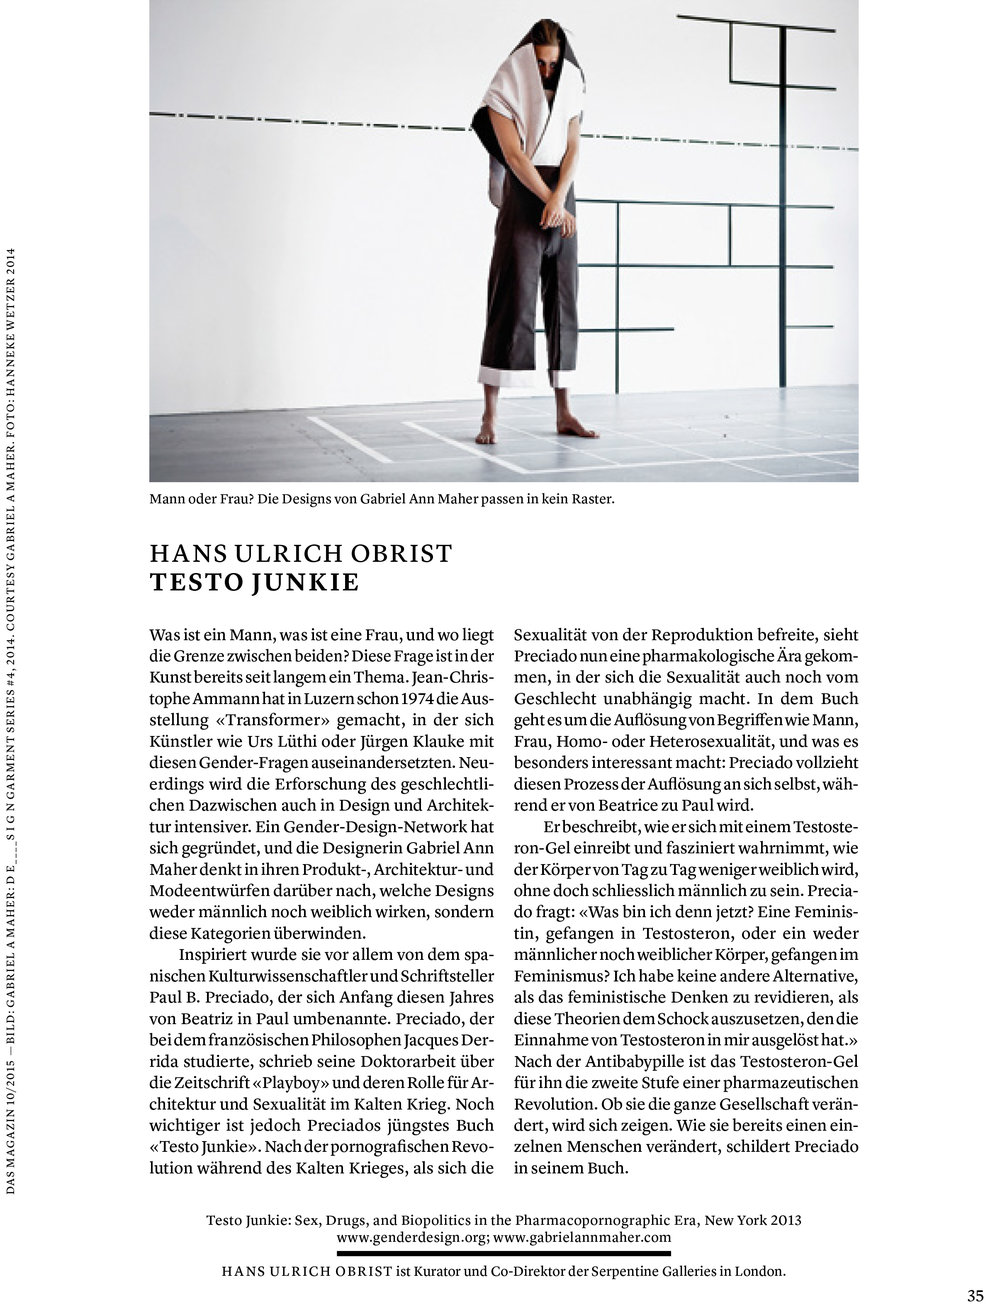 Words by Hans Ulrich Obrist  Published 2015, in print,  Das Magazine